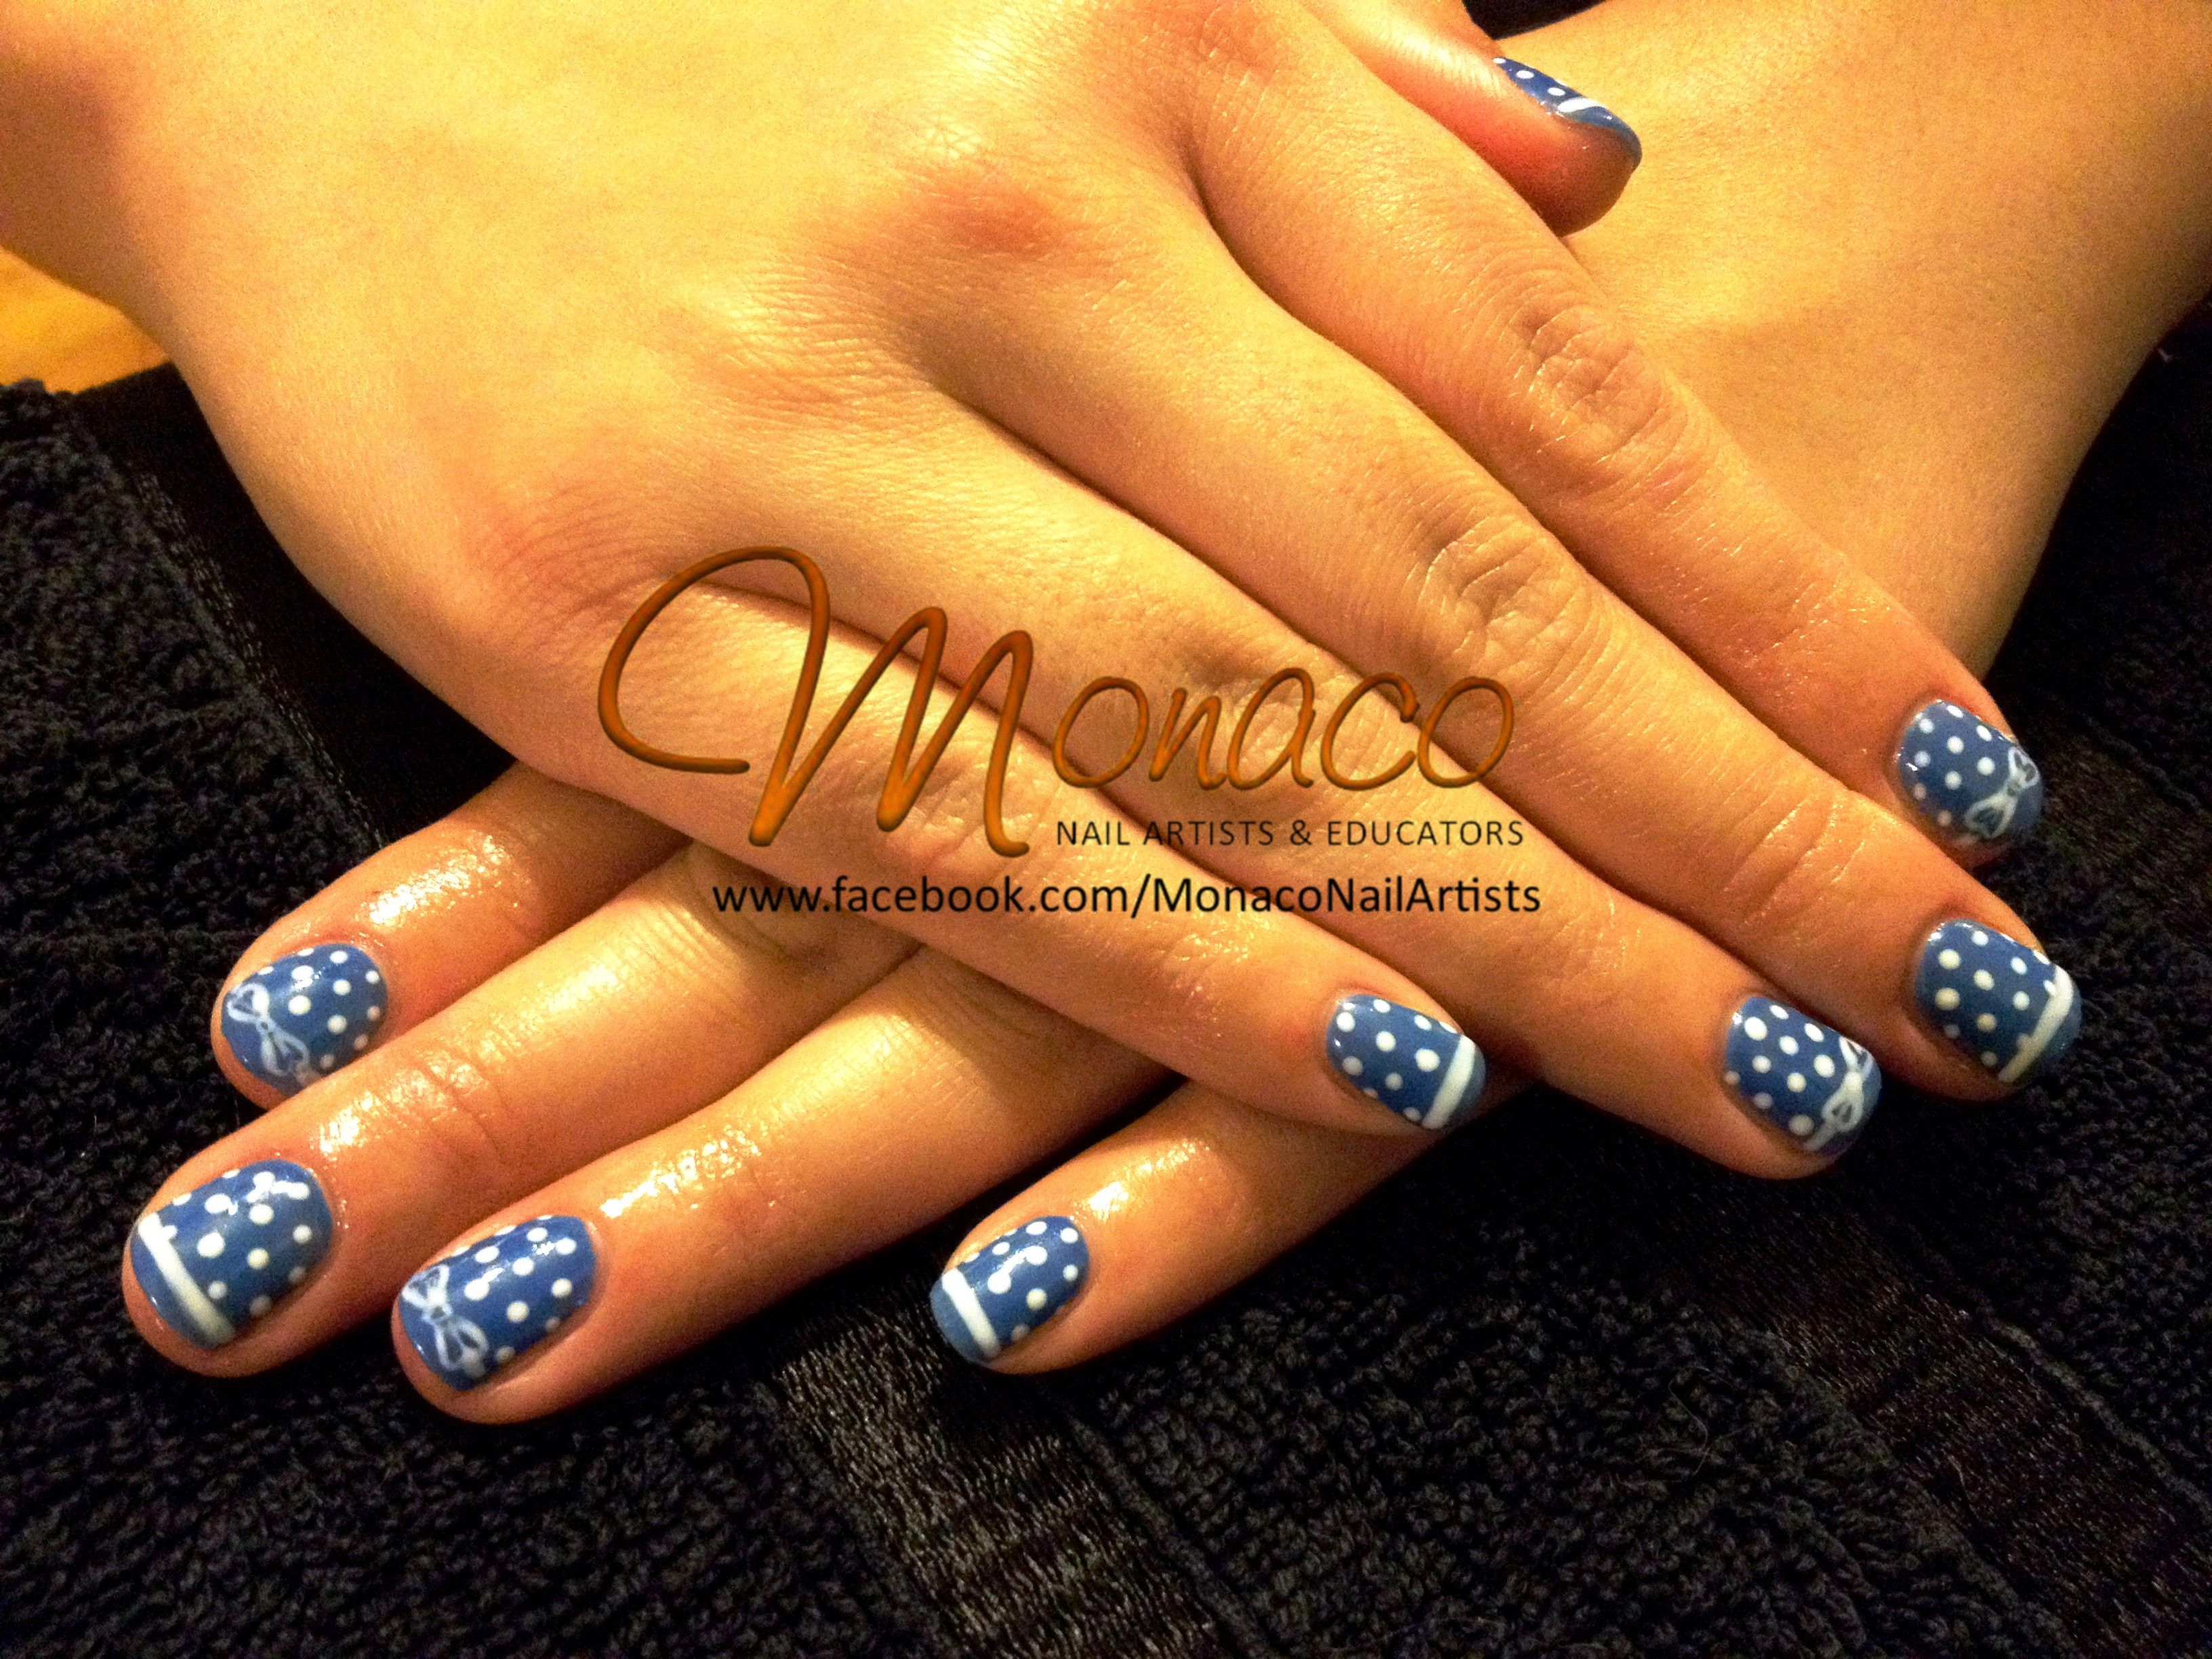 Bright Blue Nails with white PolkaDots and Bows from